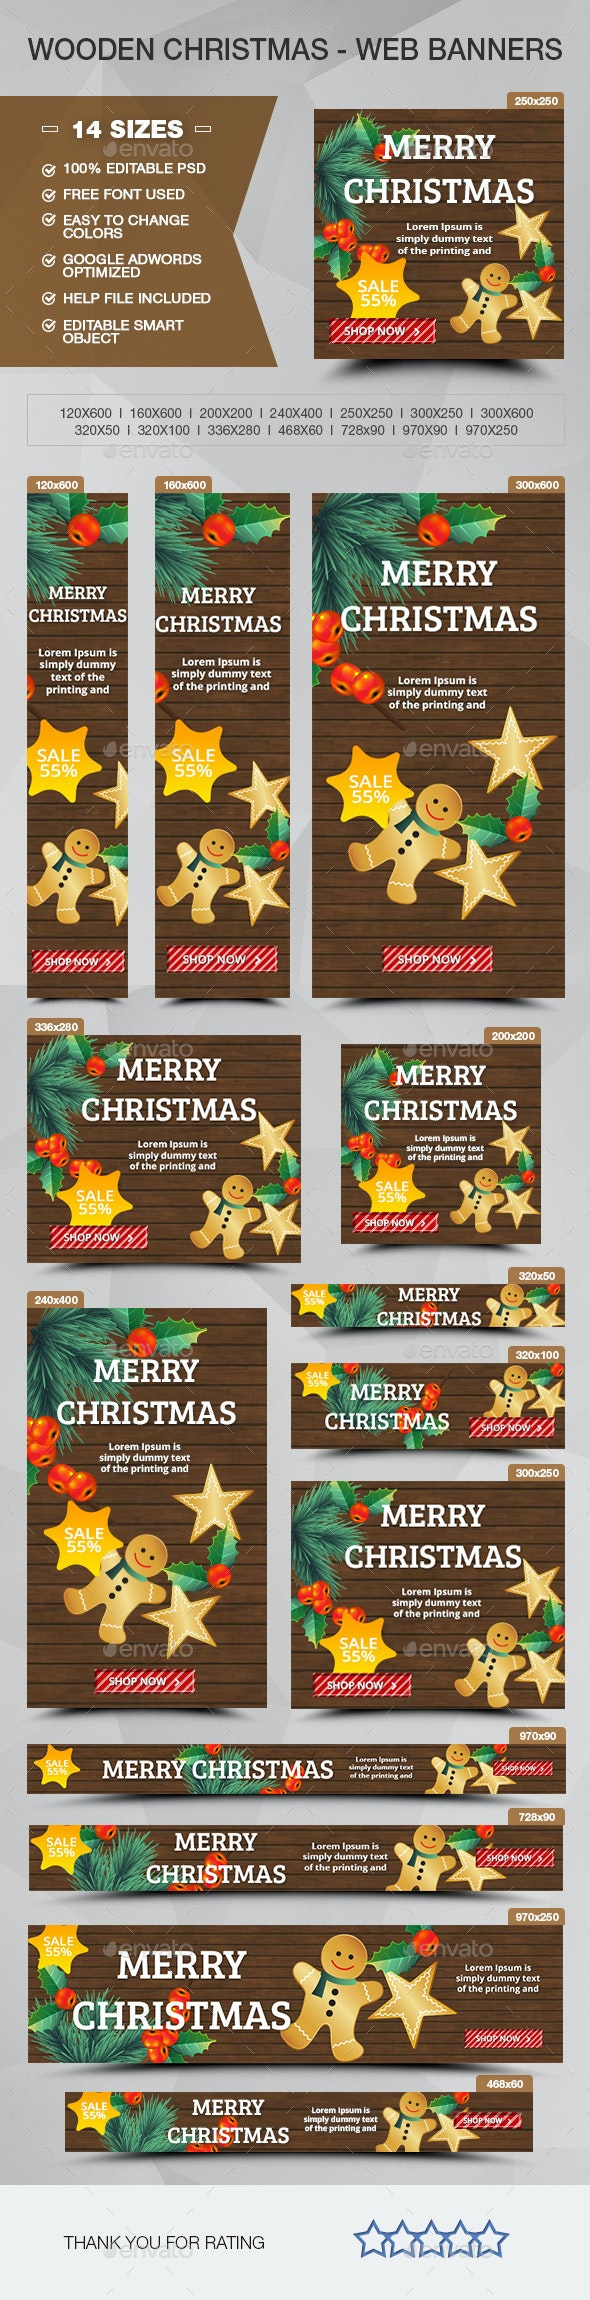 Wood Christmas Sale - ADS Banners - Banners & Ads Web Elements